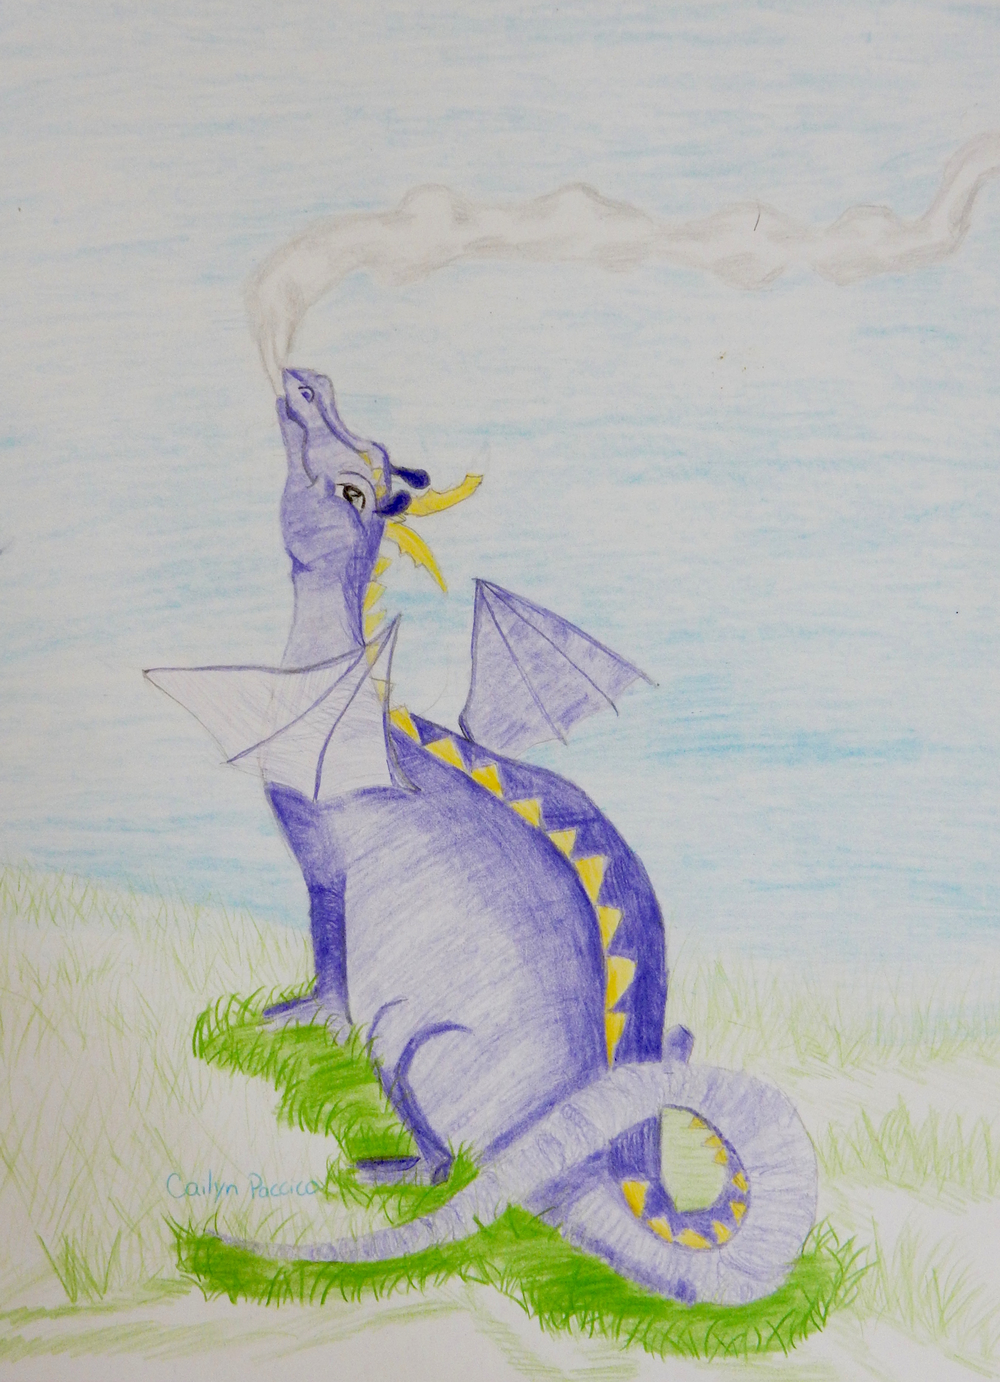 Cailyn Paccico.10yrs.Dragon.coloredpencils